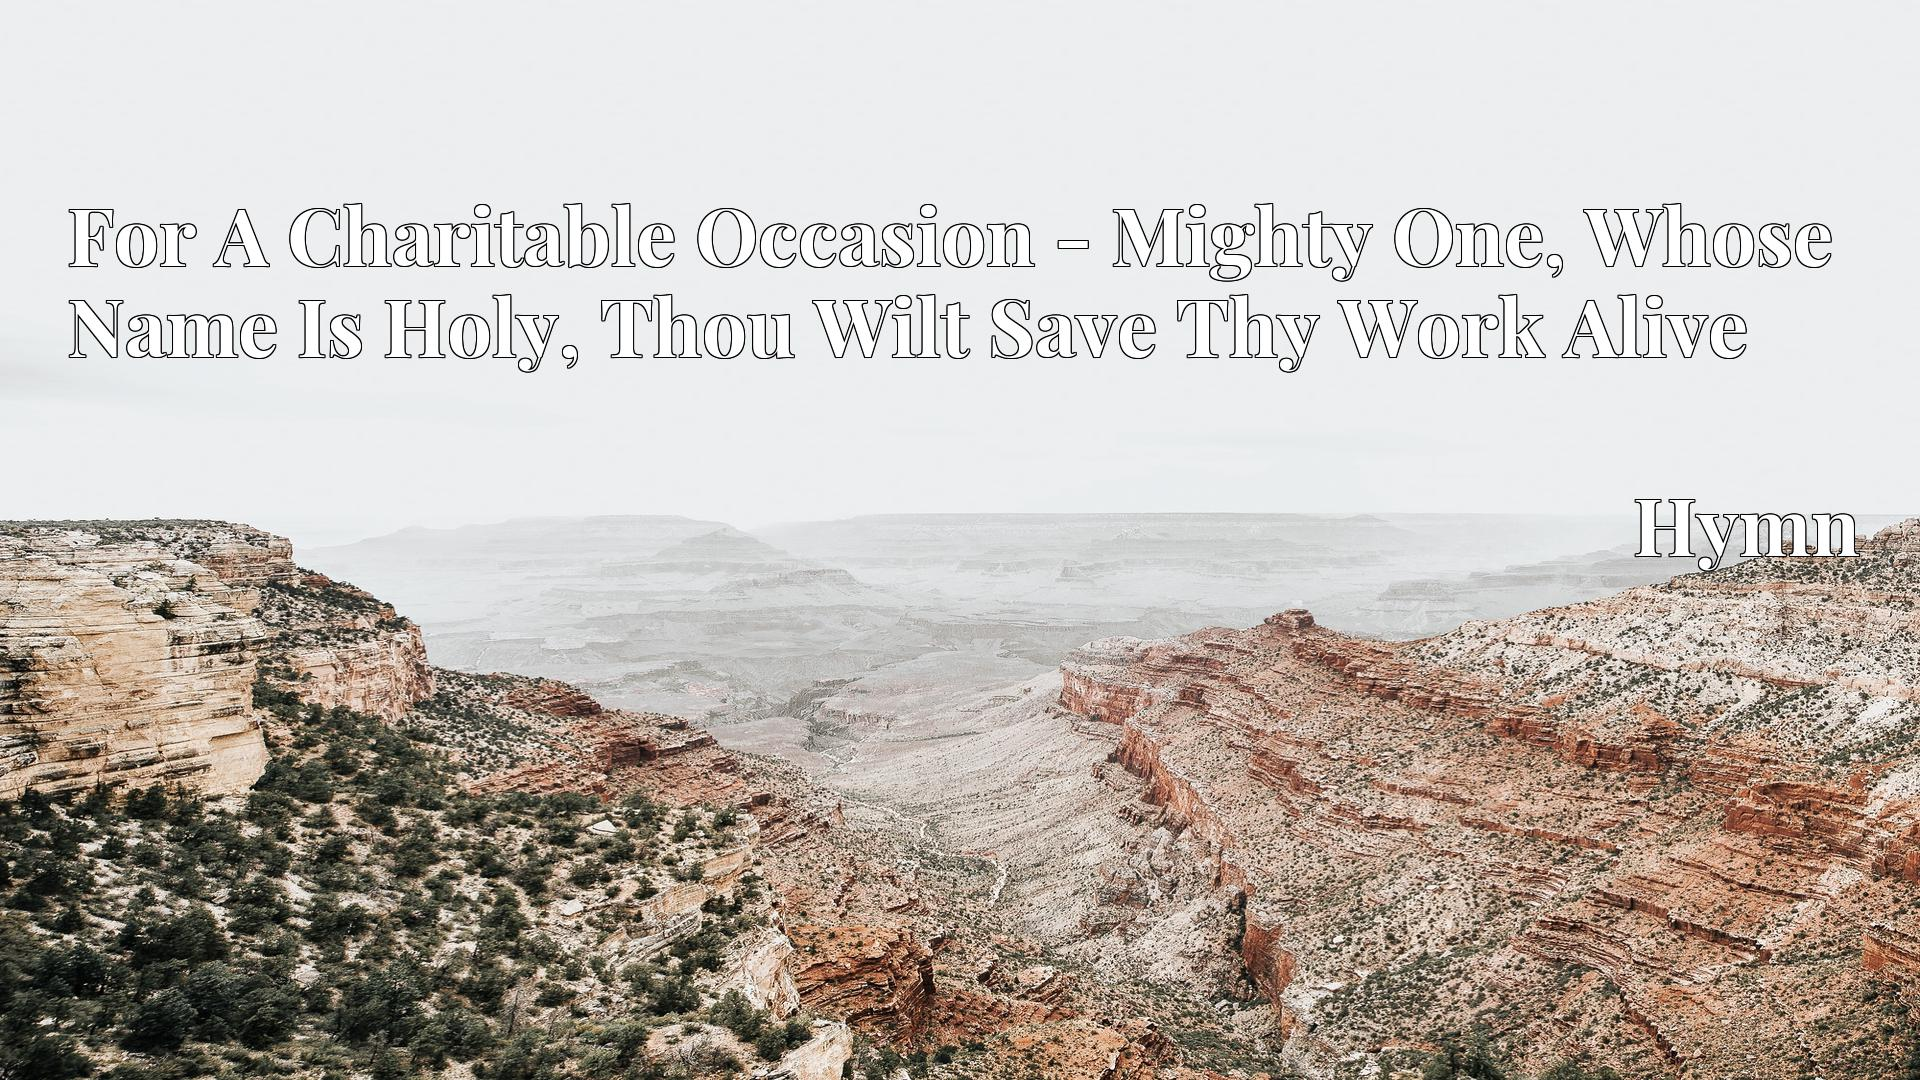 For A Charitable Occasion - Mighty One, Whose Name Is Holy, Thou Wilt Save Thy Work Alive - Hymn